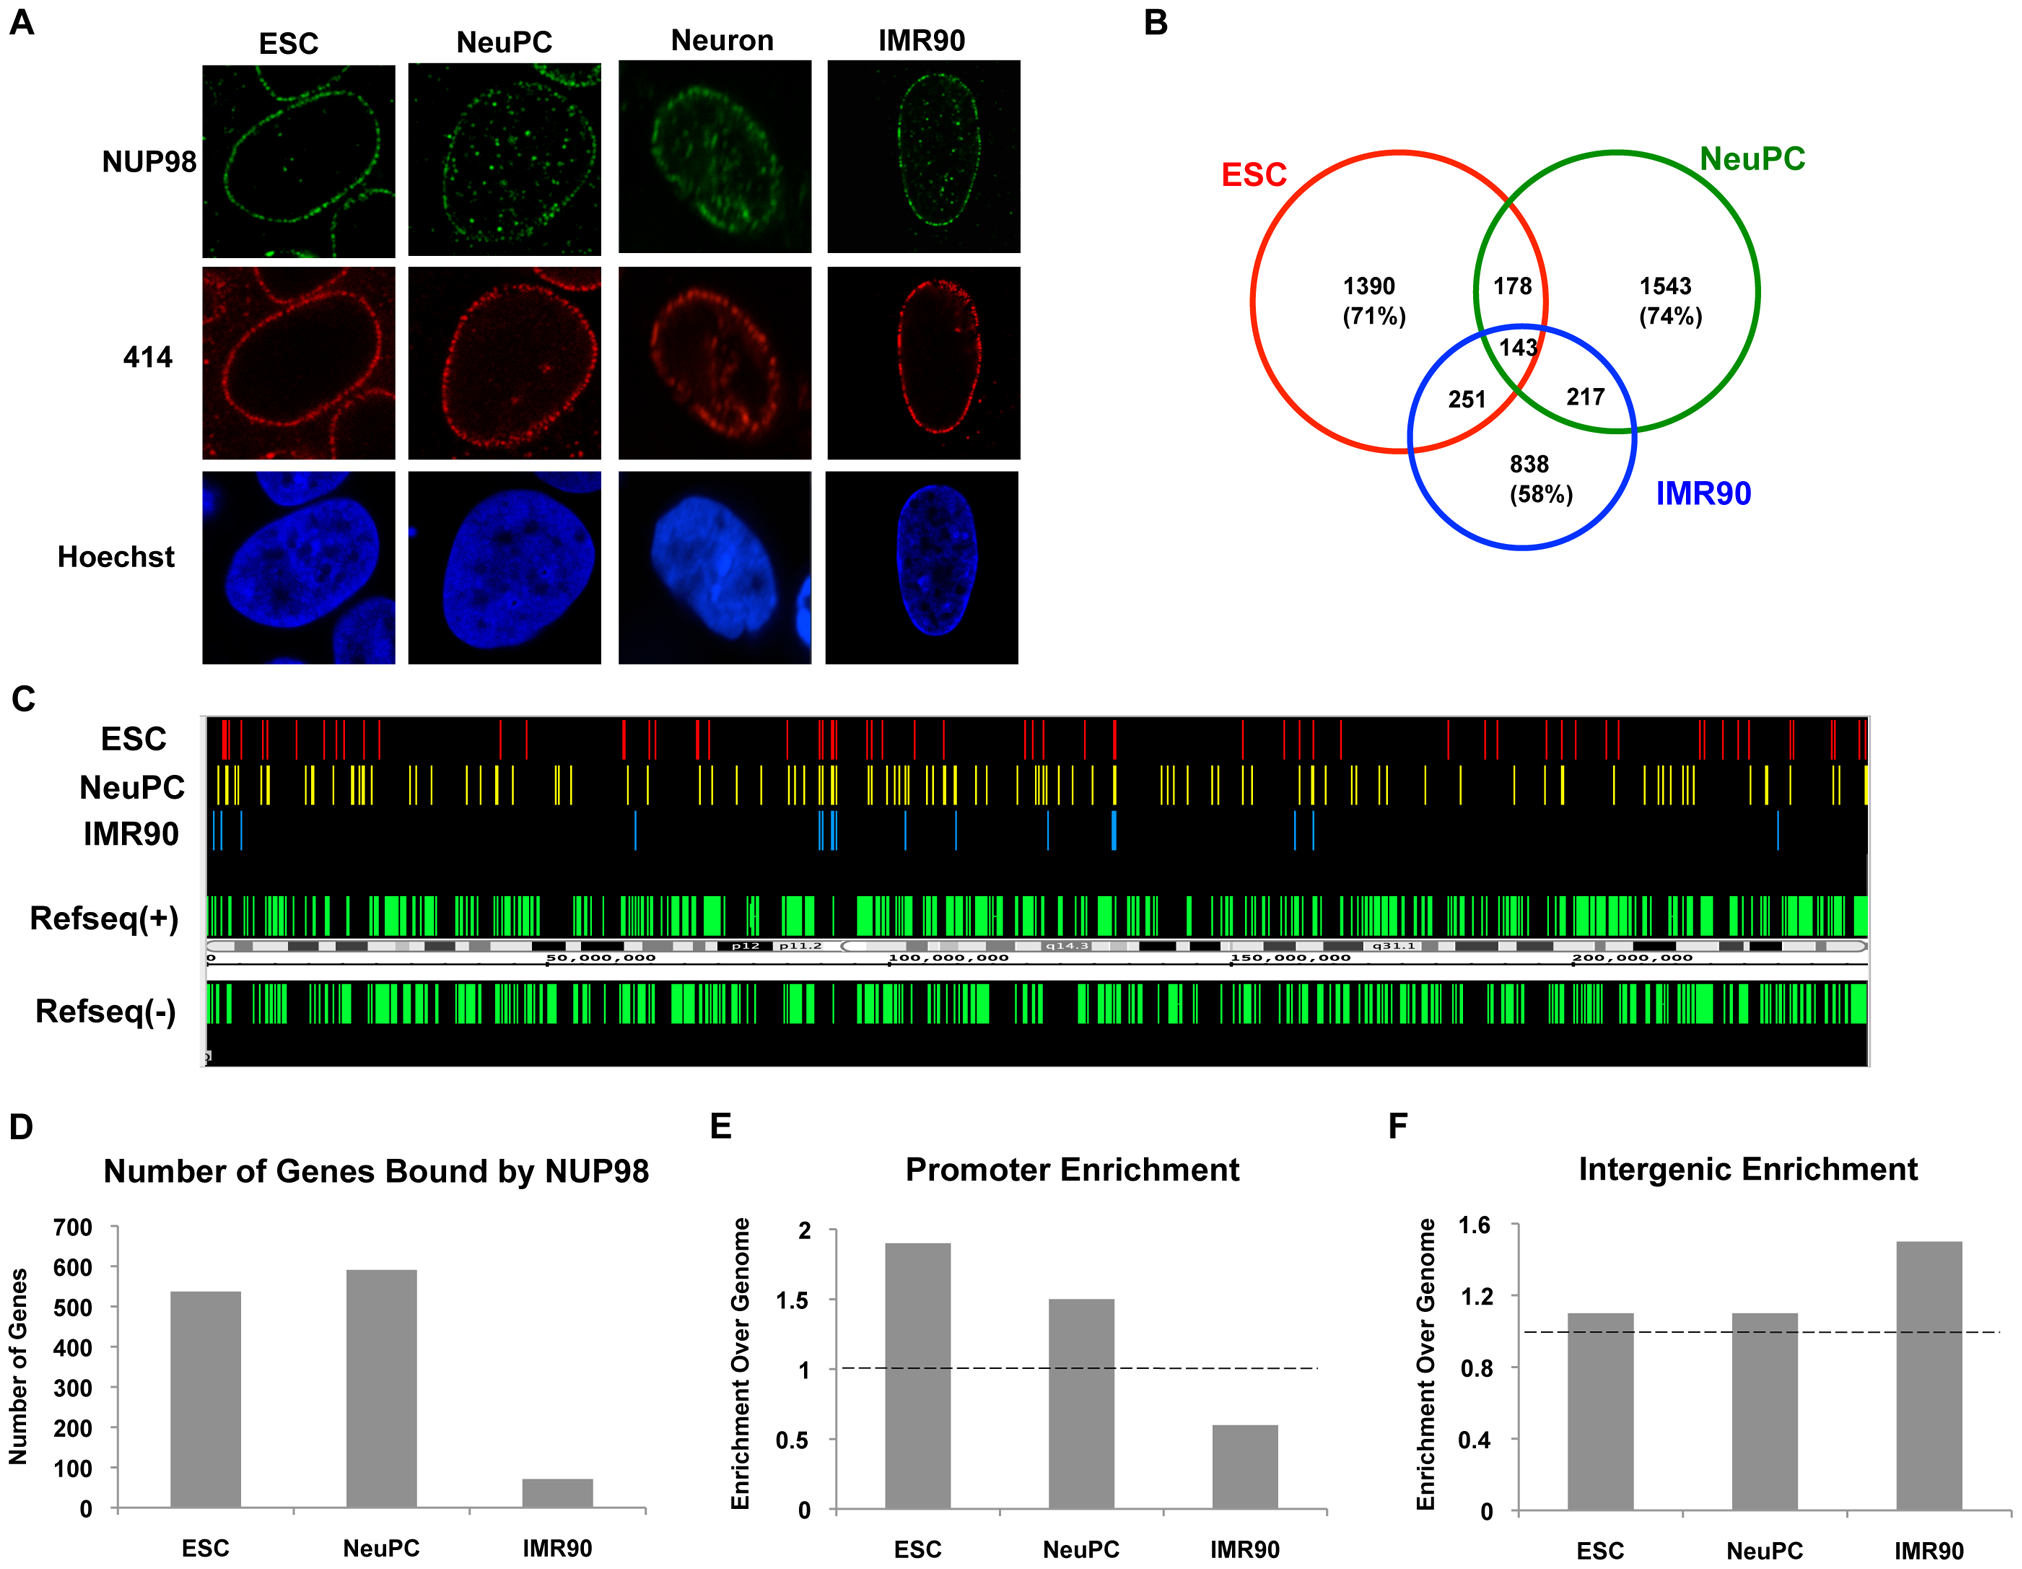 NUP98 binds to distinct genomic regions in cells of different developmental stages.